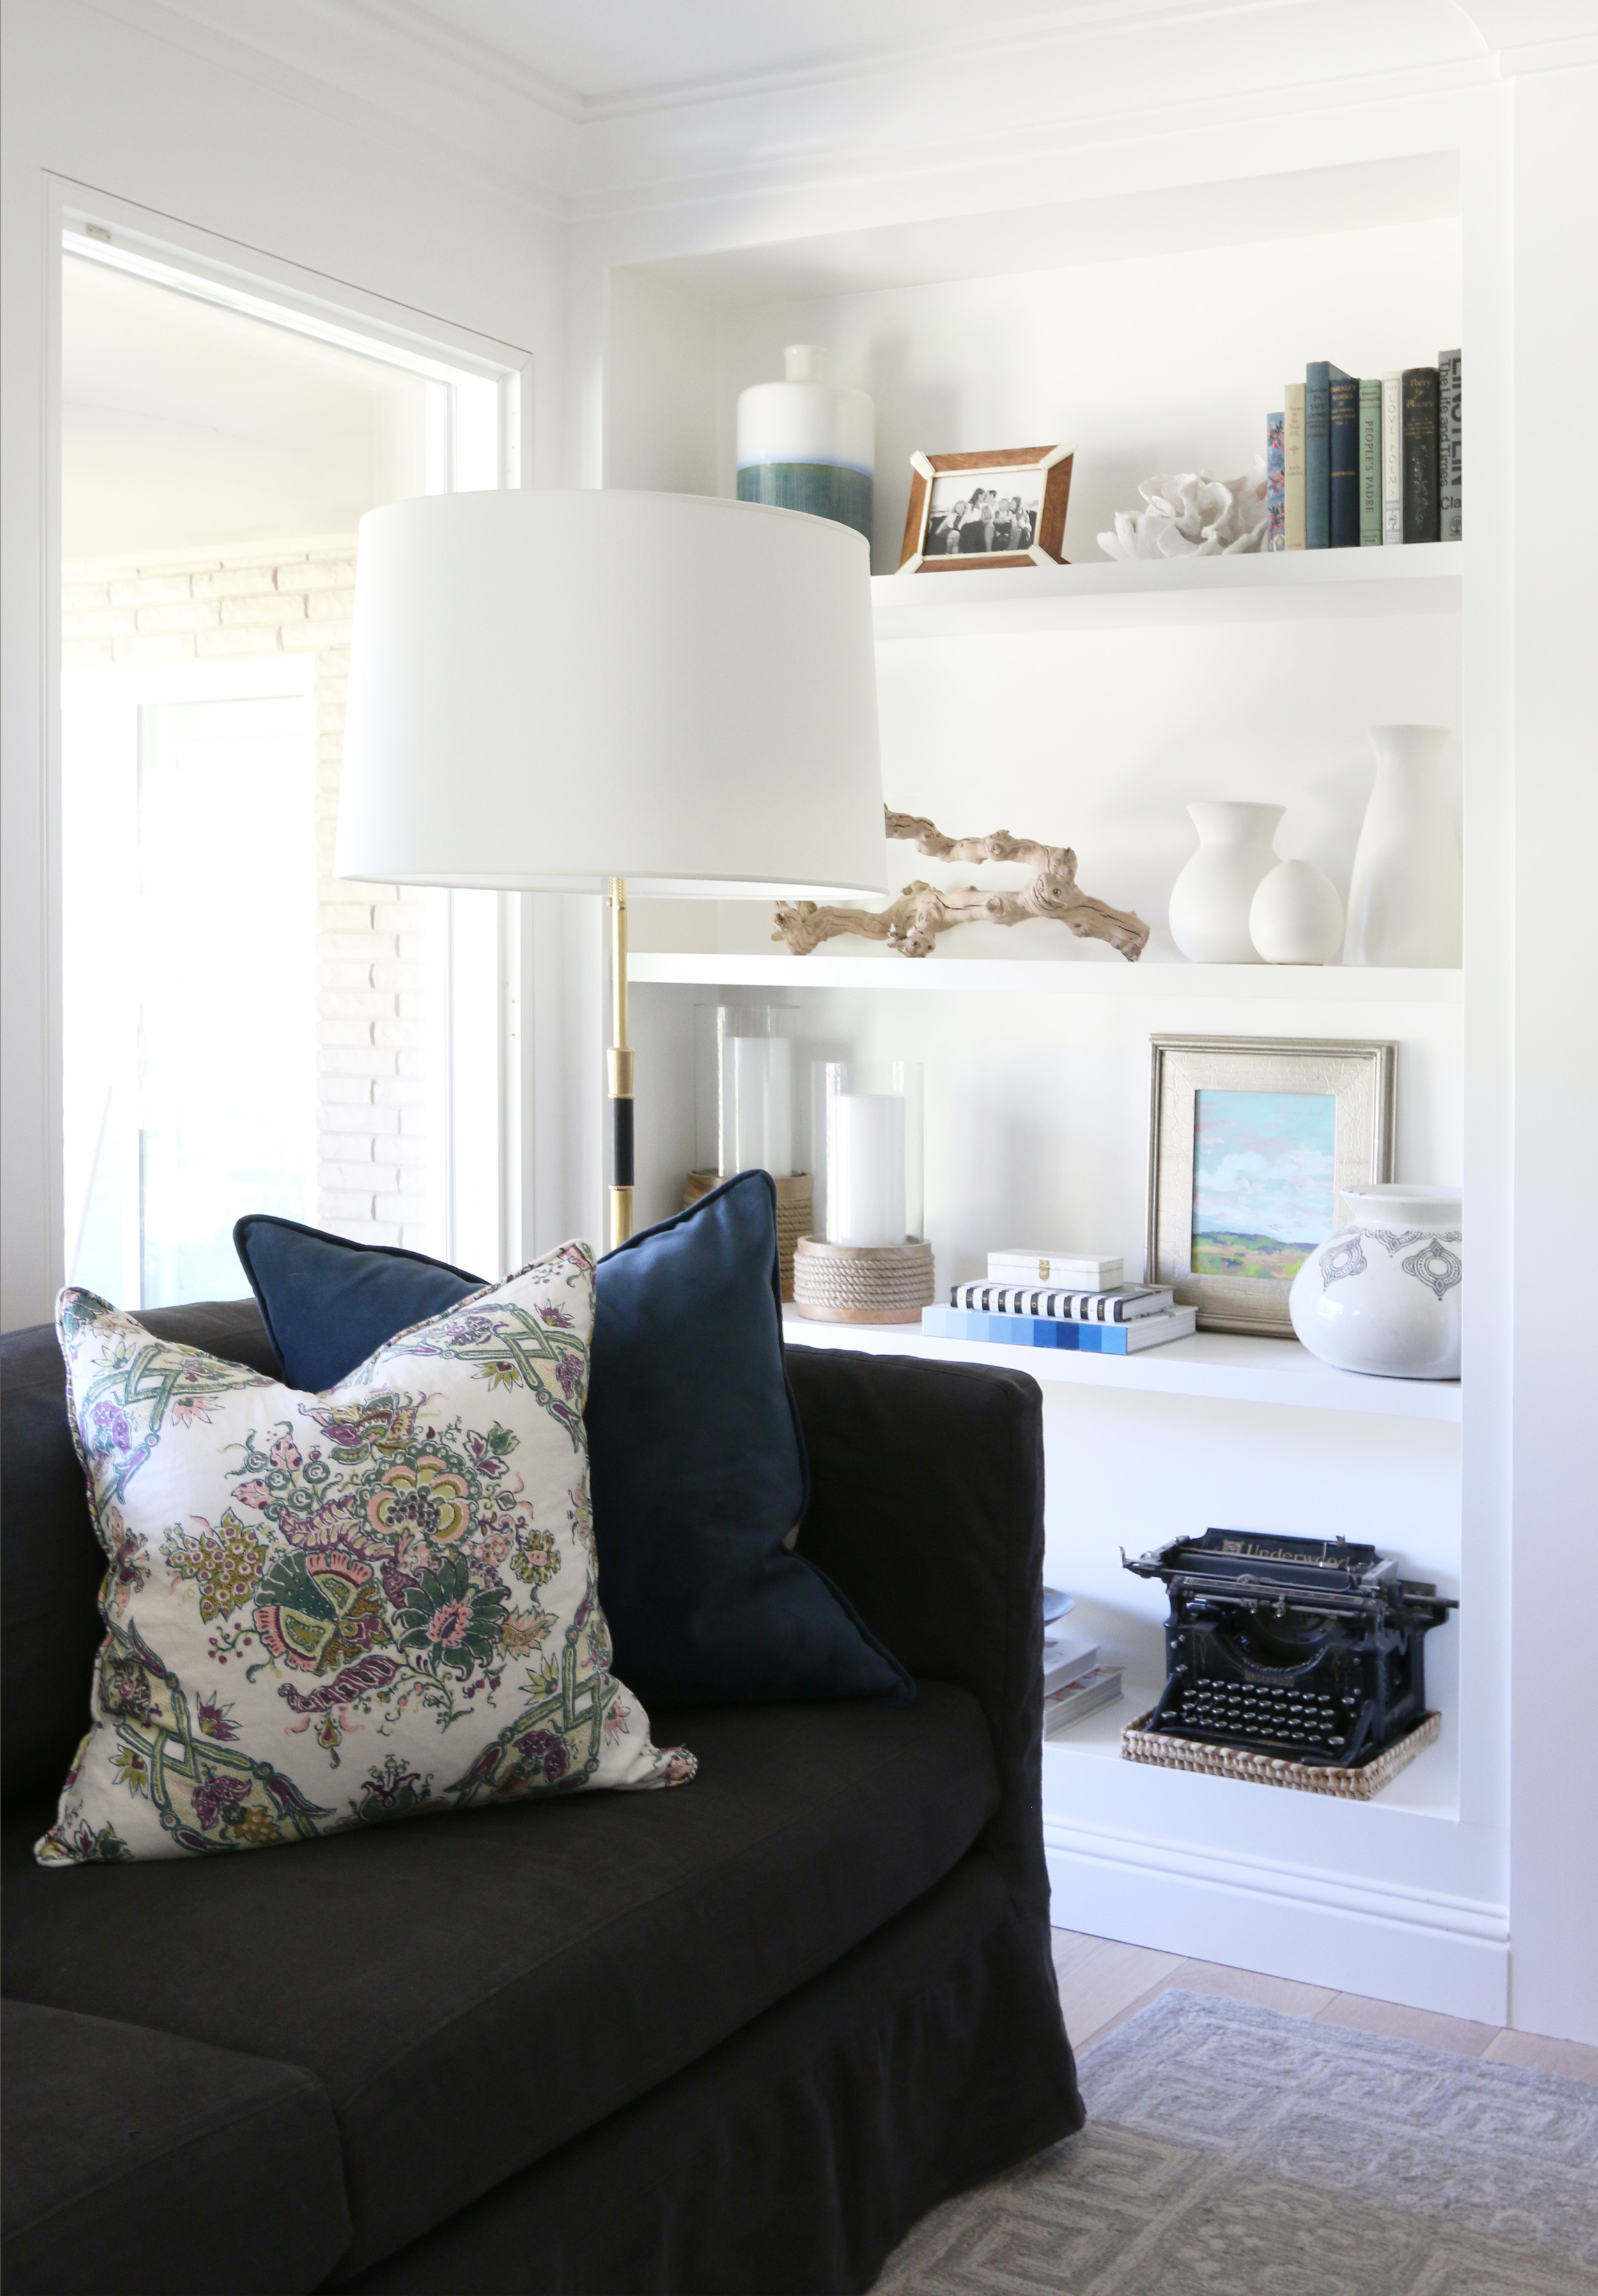 Charcoal sofa and built-in shelves || Studio McGee